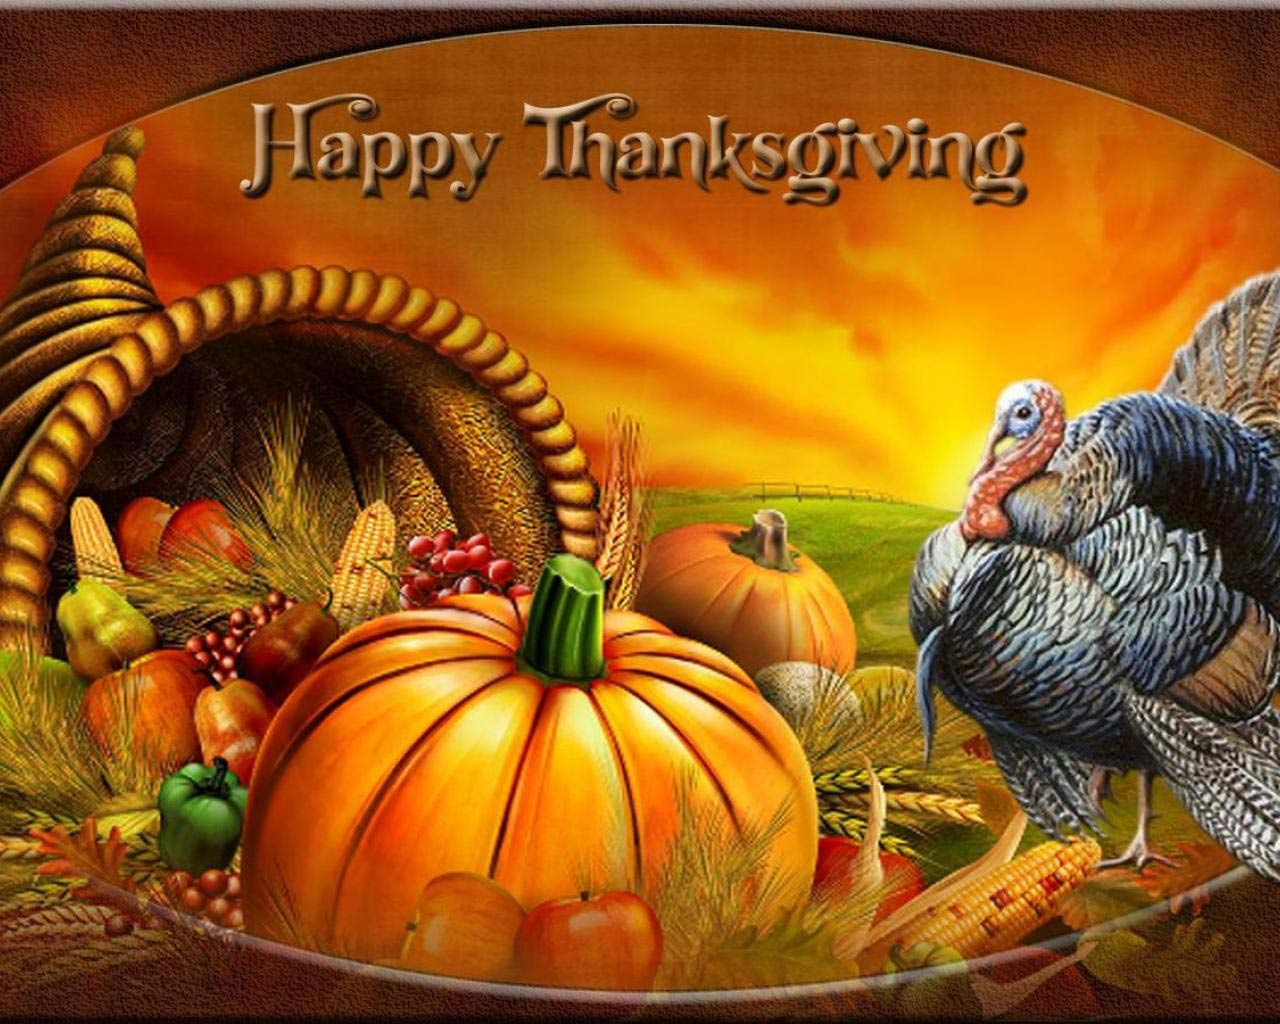 Happy thanksgiving greeting card and wallpaper http: www.riversongs